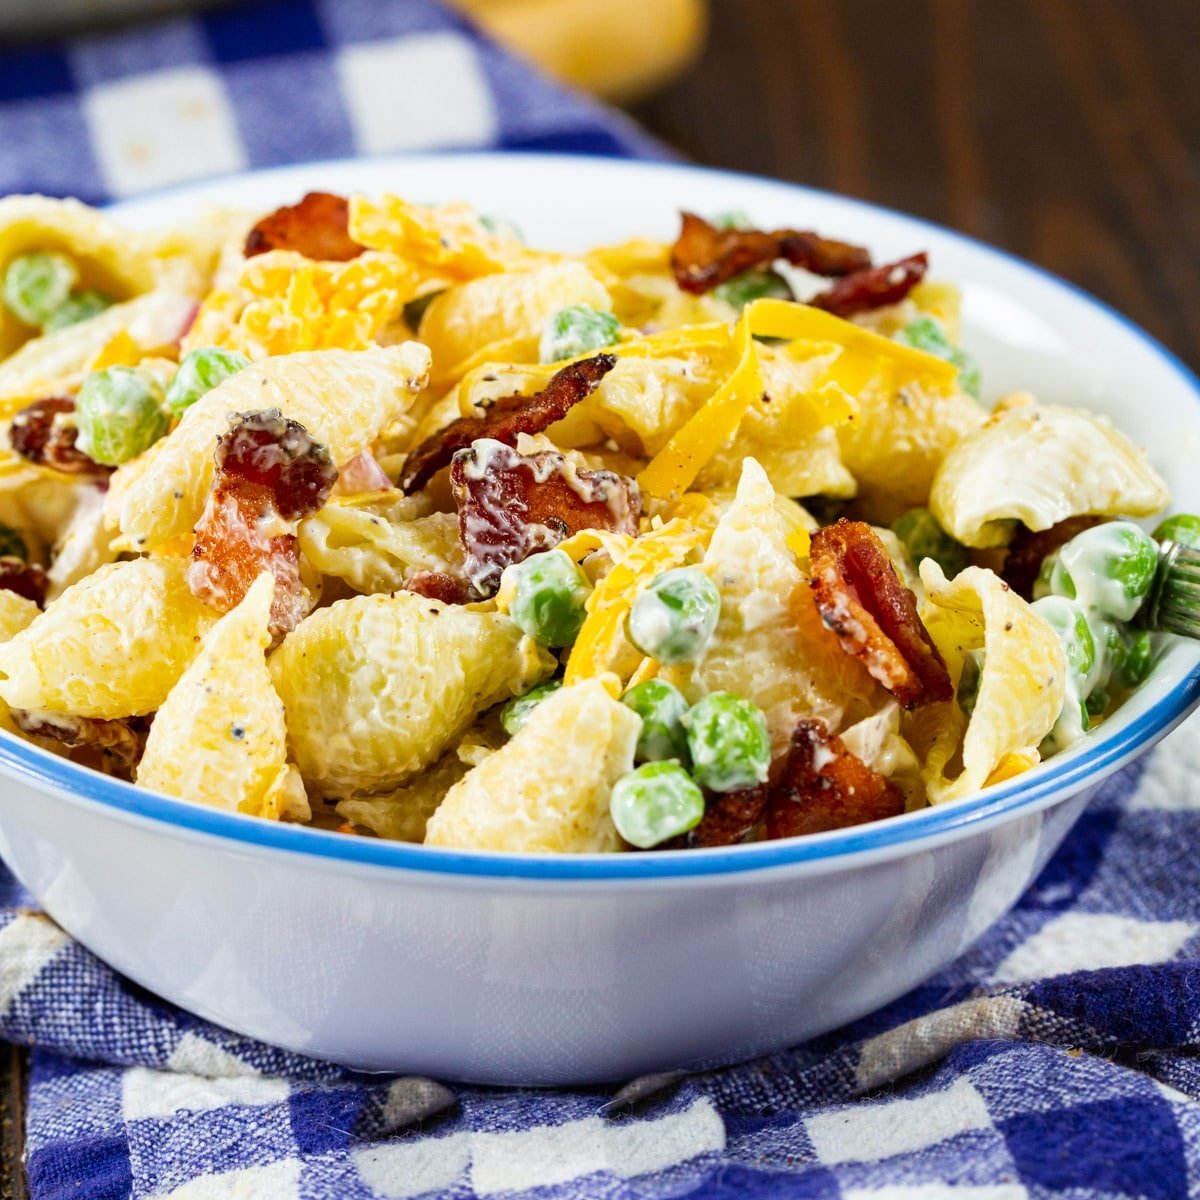 Small bowl full of Creamy Pasta Salad with Peas and Bacon.